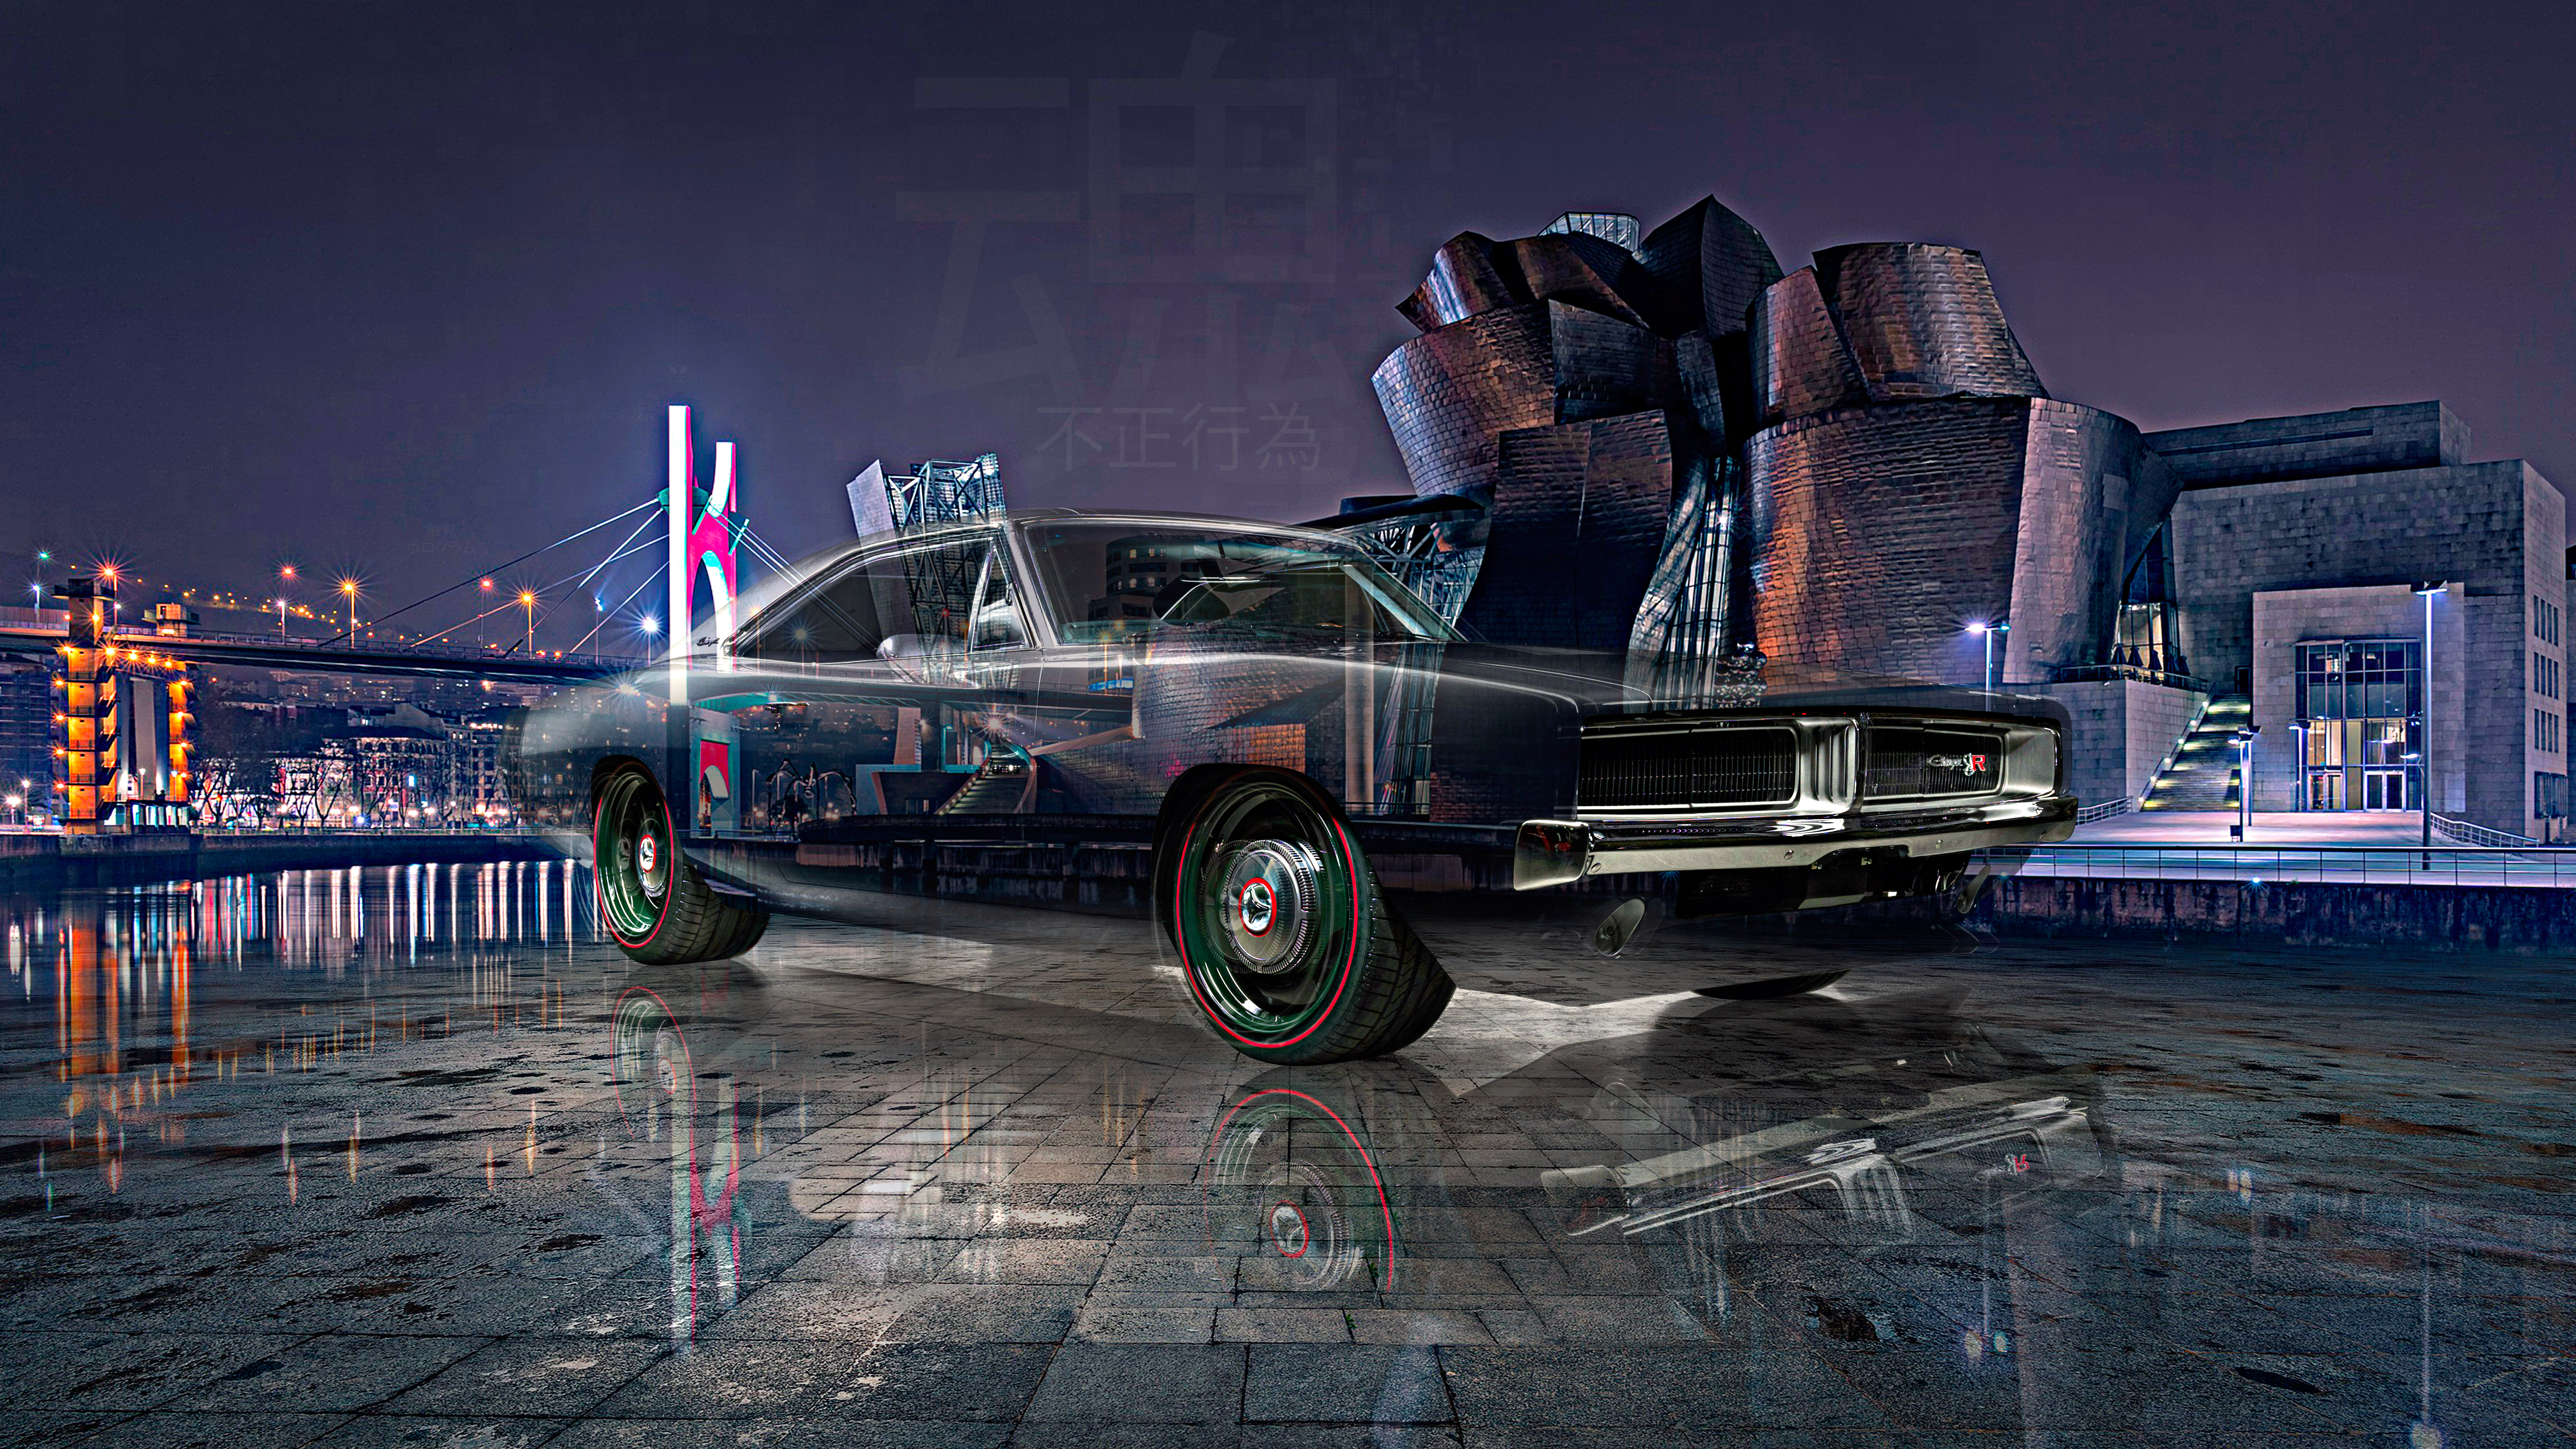 Dodge-Charger-Defector-1969-Ringbrothers-Muscle-Super-Crystal-Cheating-Soul-Bilbao-Spanish-Car-2021-Multicolors-8K-Wallpapers-by-Tony-Kokhan-www.el-tony.com-image